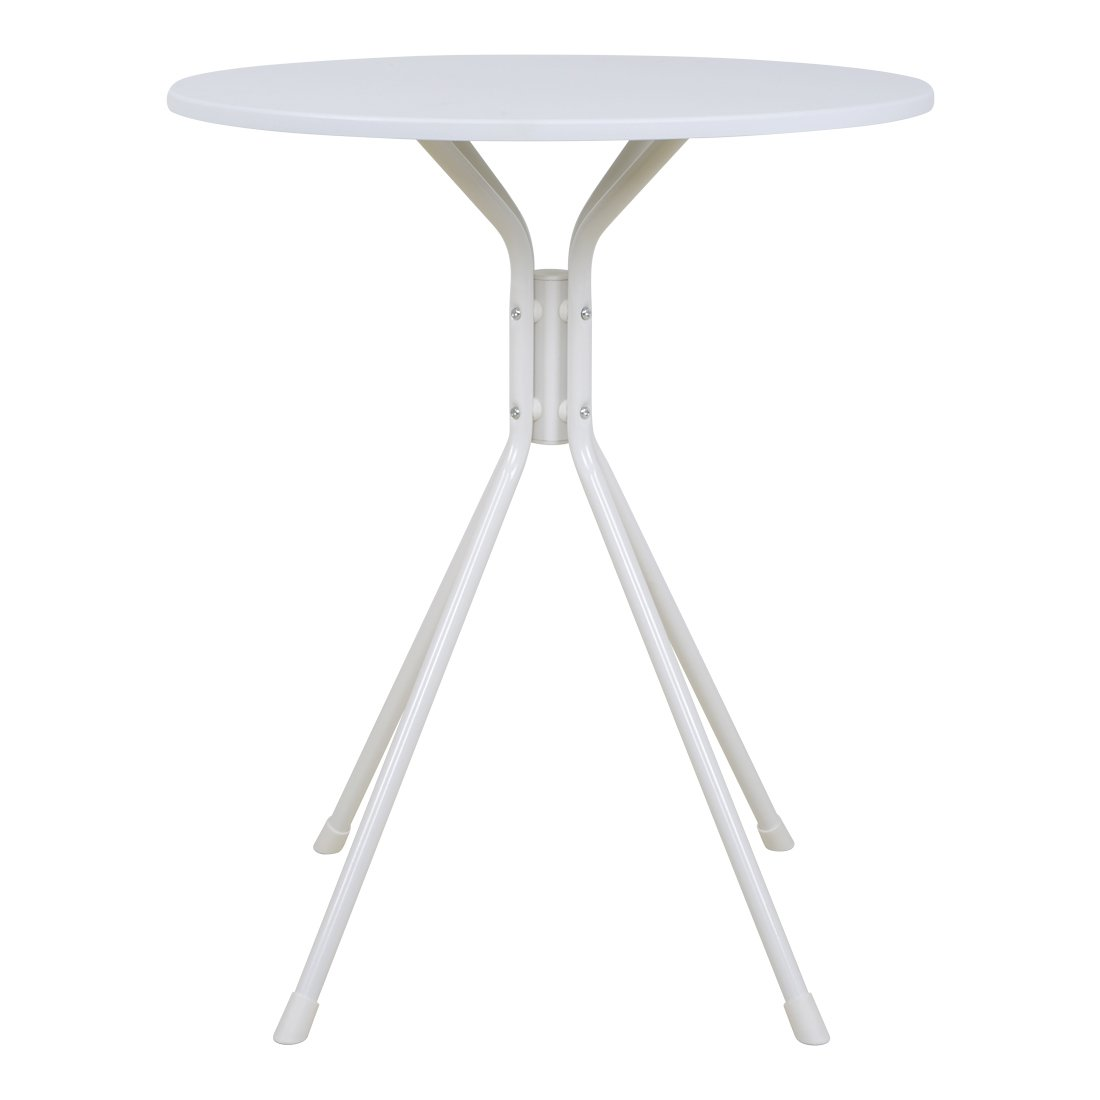 Funmall White Modern Round Table Tea Coffee Dining Living Room Furniture Home Decor with Splayed Leg Base by Funmall (Image #3)